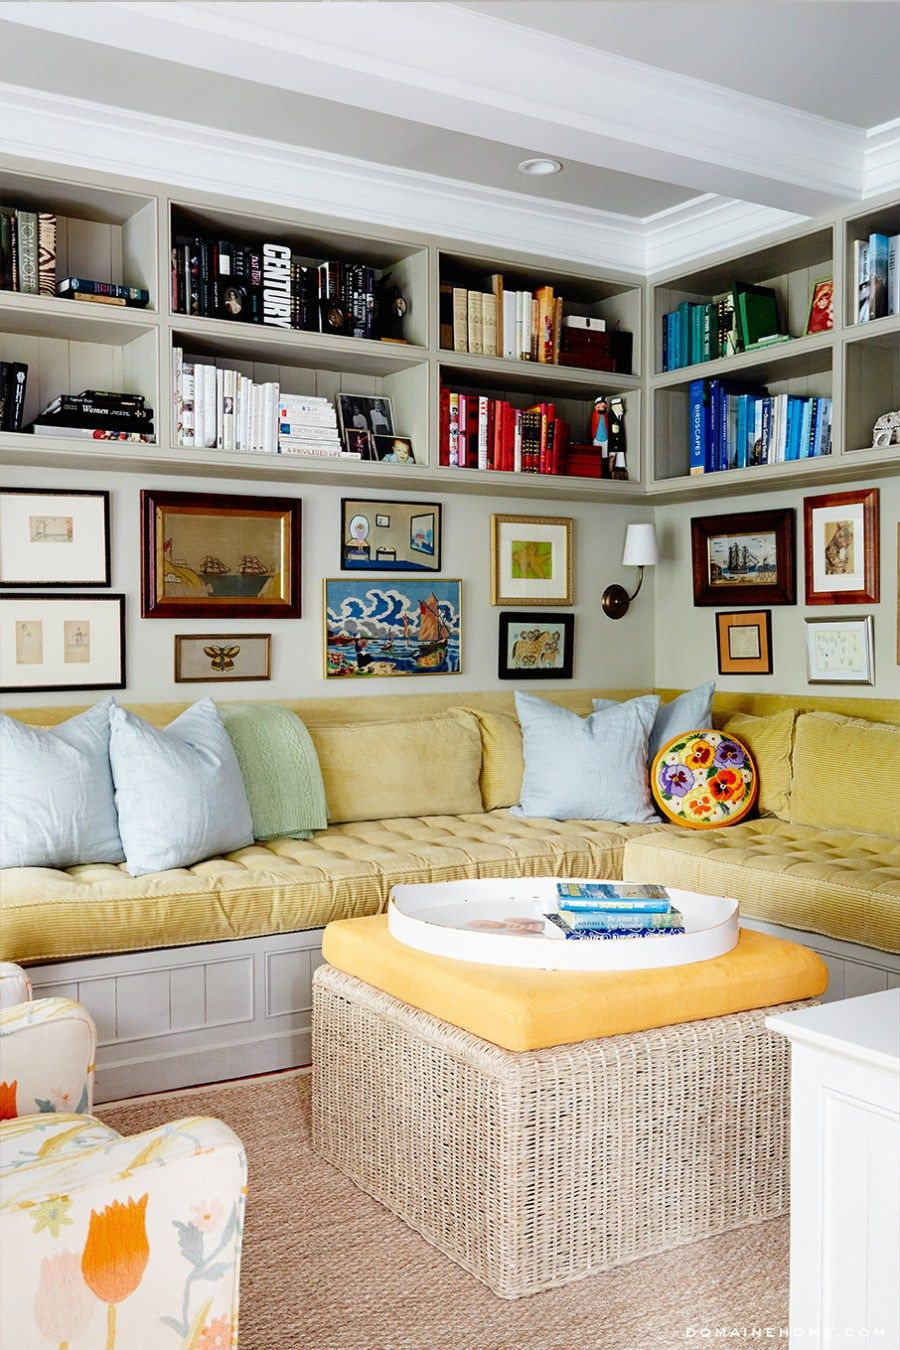 25 Hacks For Living In Small Spaces Small Space Hacks S